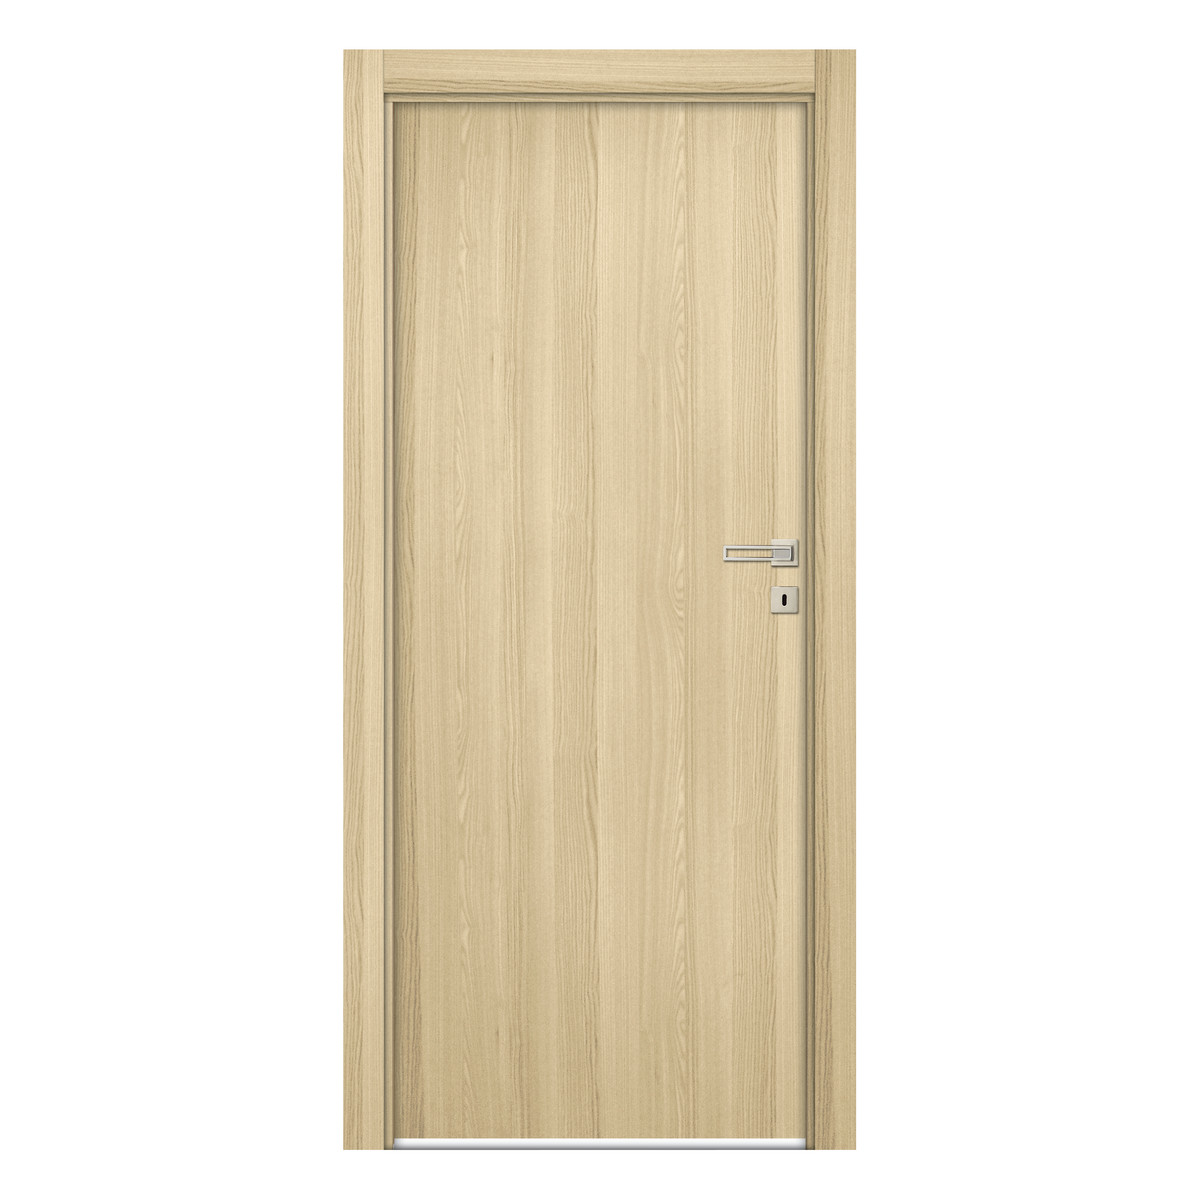 Porta da interno battente young rovere sbiancato 80 x h for Leroy merlin porte interne